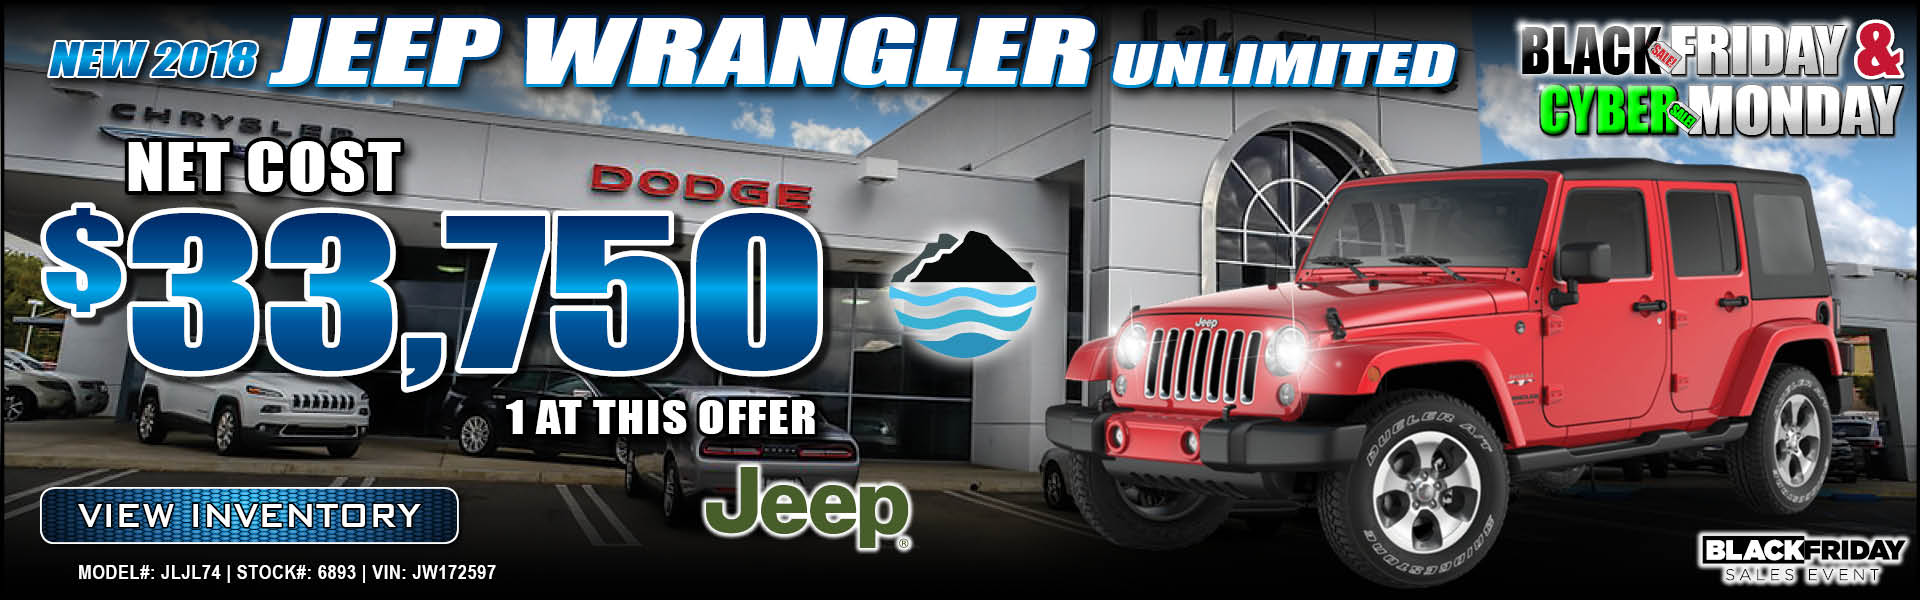 Jeep Wrangler Unlimited $33,750